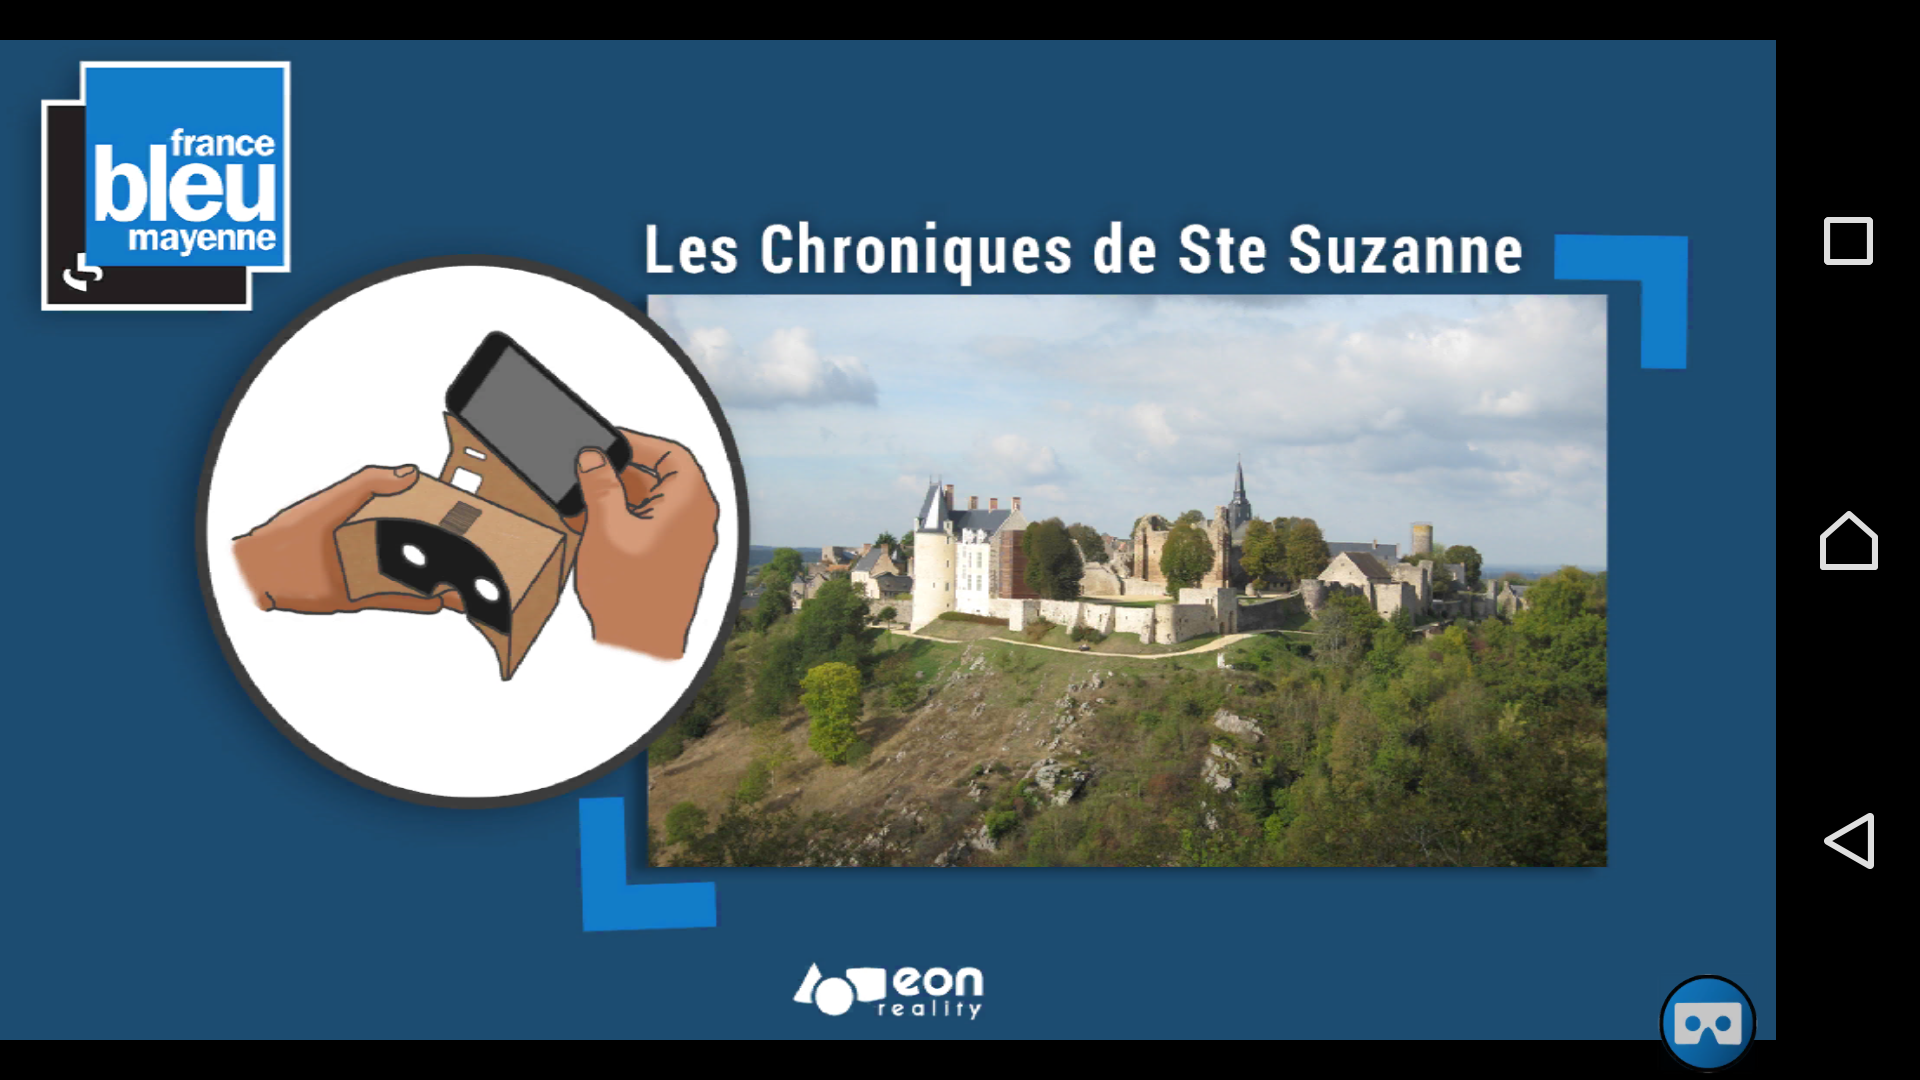 Prototype de l'application Chronique de Sainte-Suzanne de France Bleu